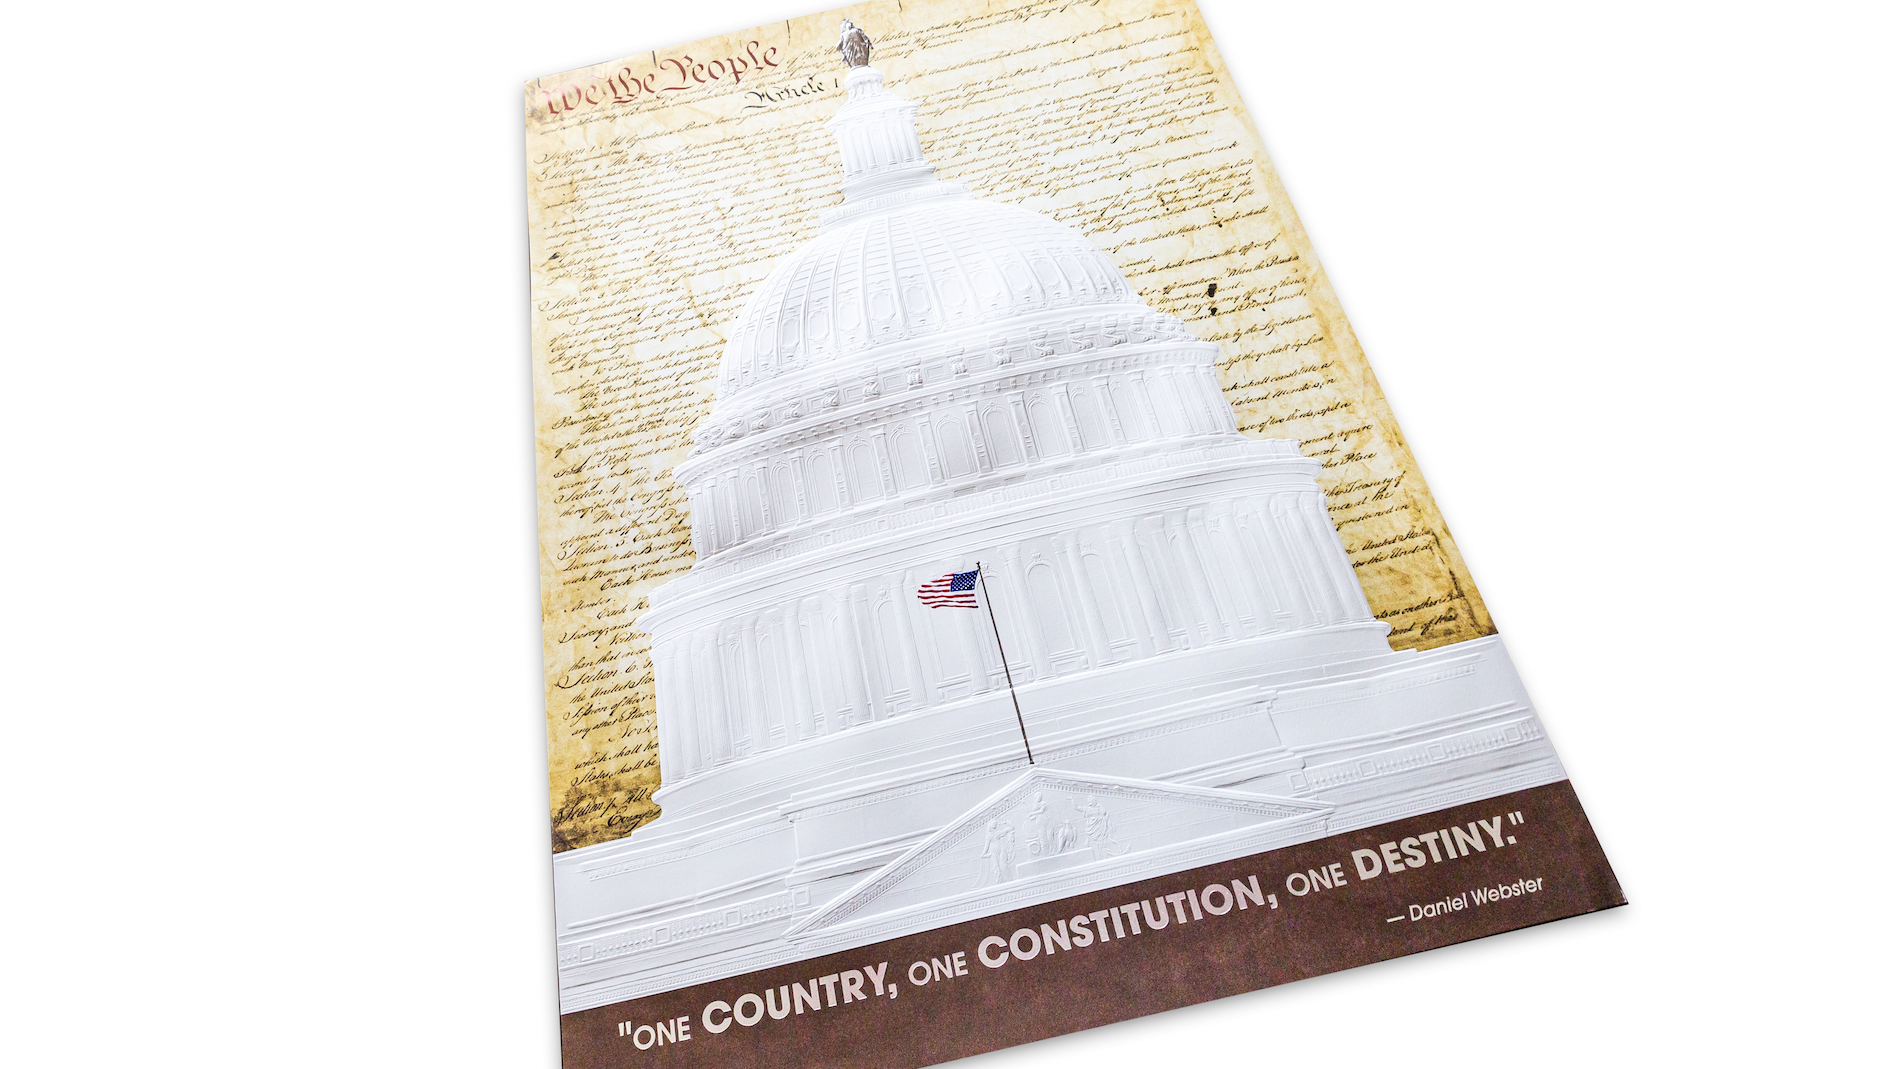 U.S. Capitol Building Foiled & Embossed Print - PaperSpecs